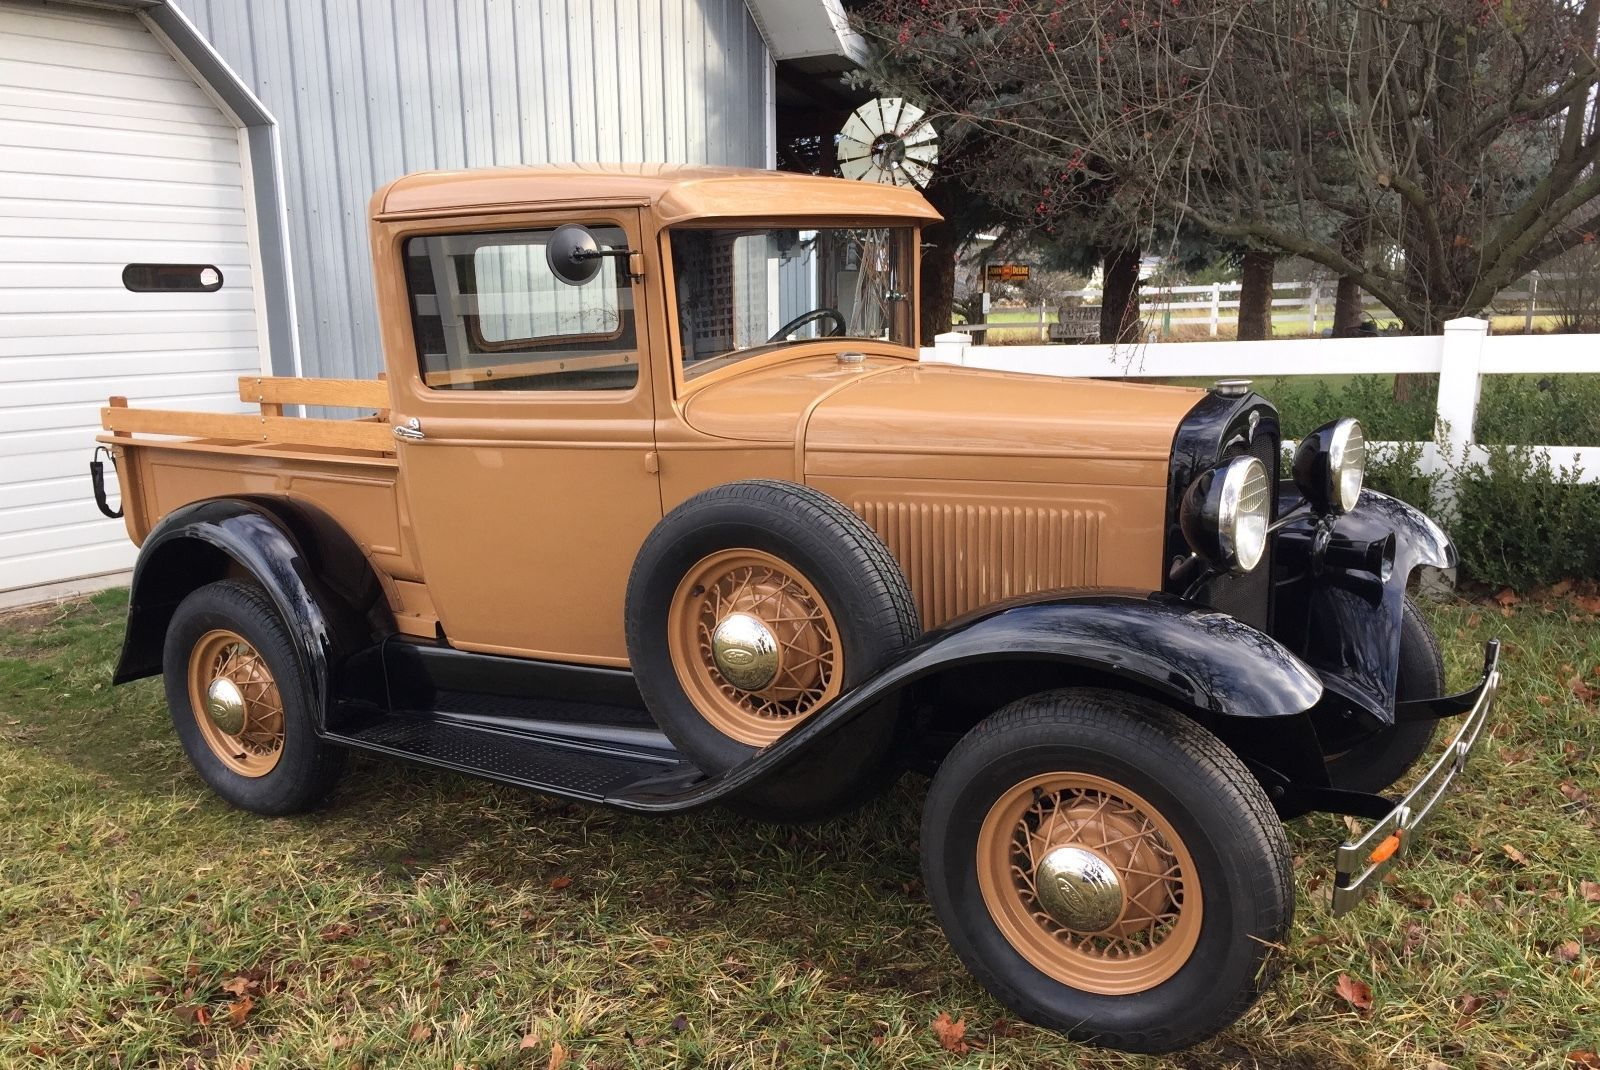 1931 Model A Ford Pickup Budd Cab Ebay Motors Parts Amp Accessories Salvage Parts Cars Ebay Ford Pickup Cab Salvage Parts